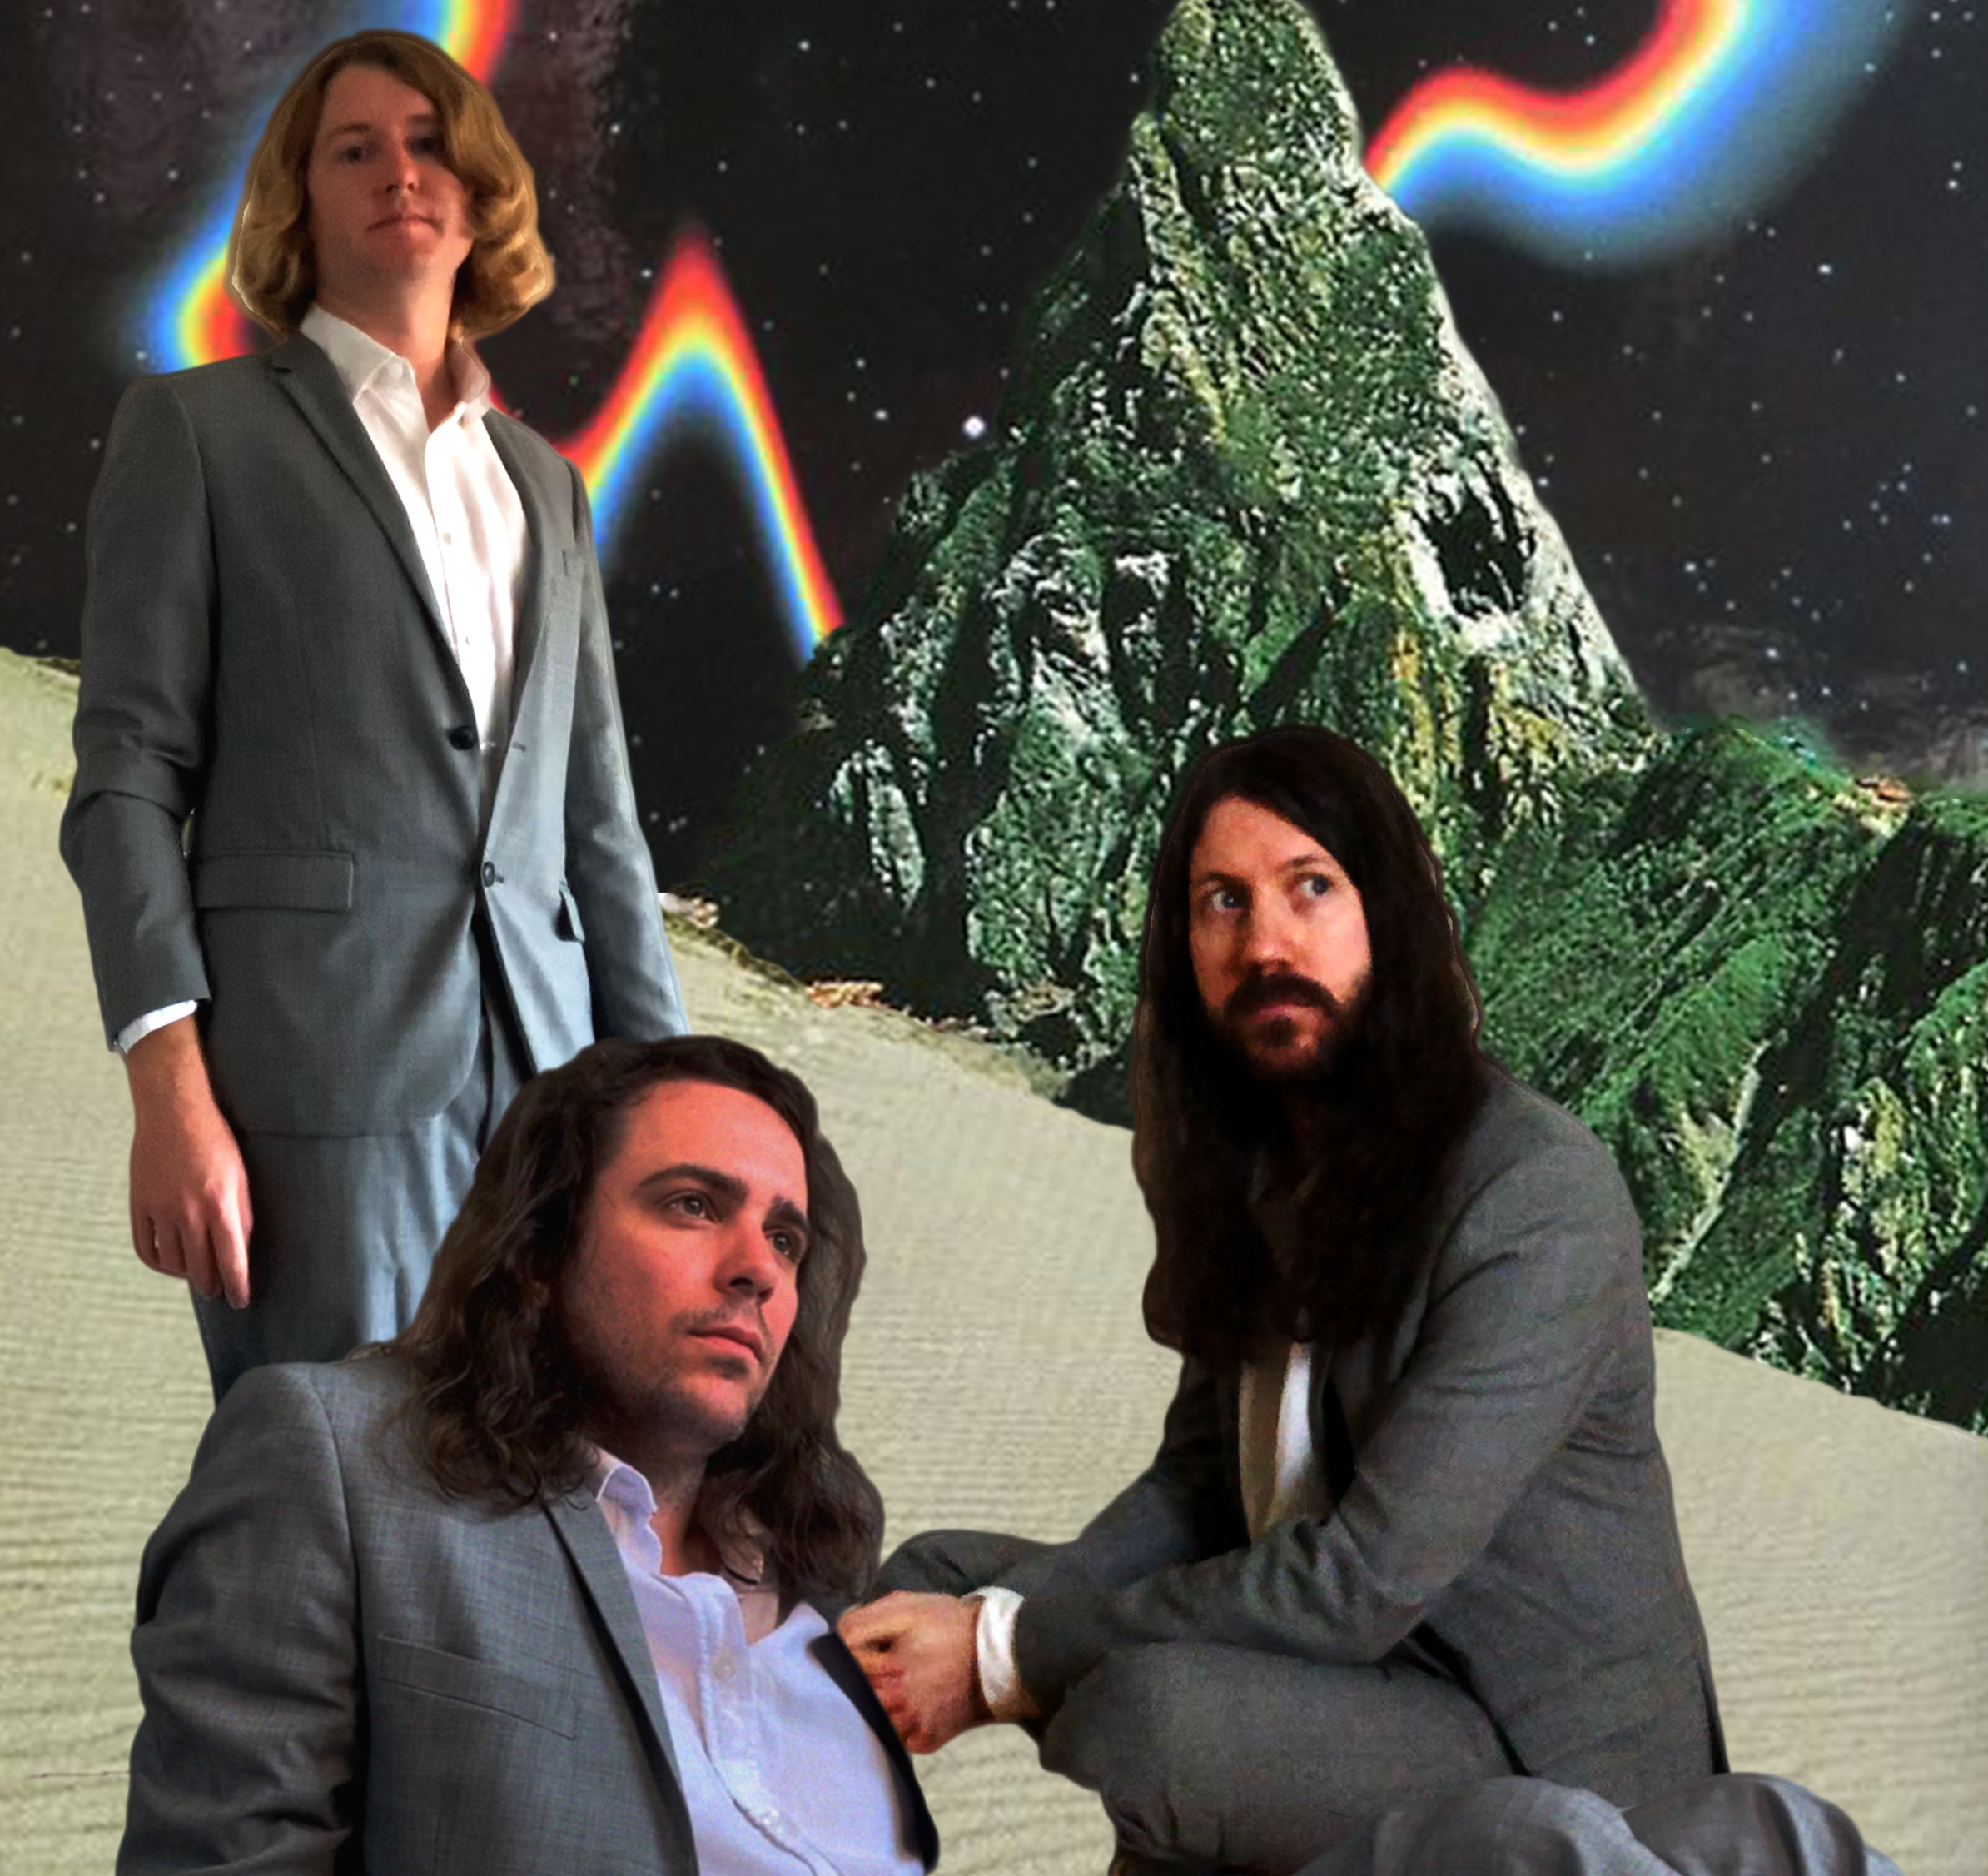 DZ DEATHRAYS ANNOUNCE ANTICIPATED FIFTH STUDIO ALBUM POSITIVE RISING: PART 2 FOR RELEASE FRIDAY 9 JULY